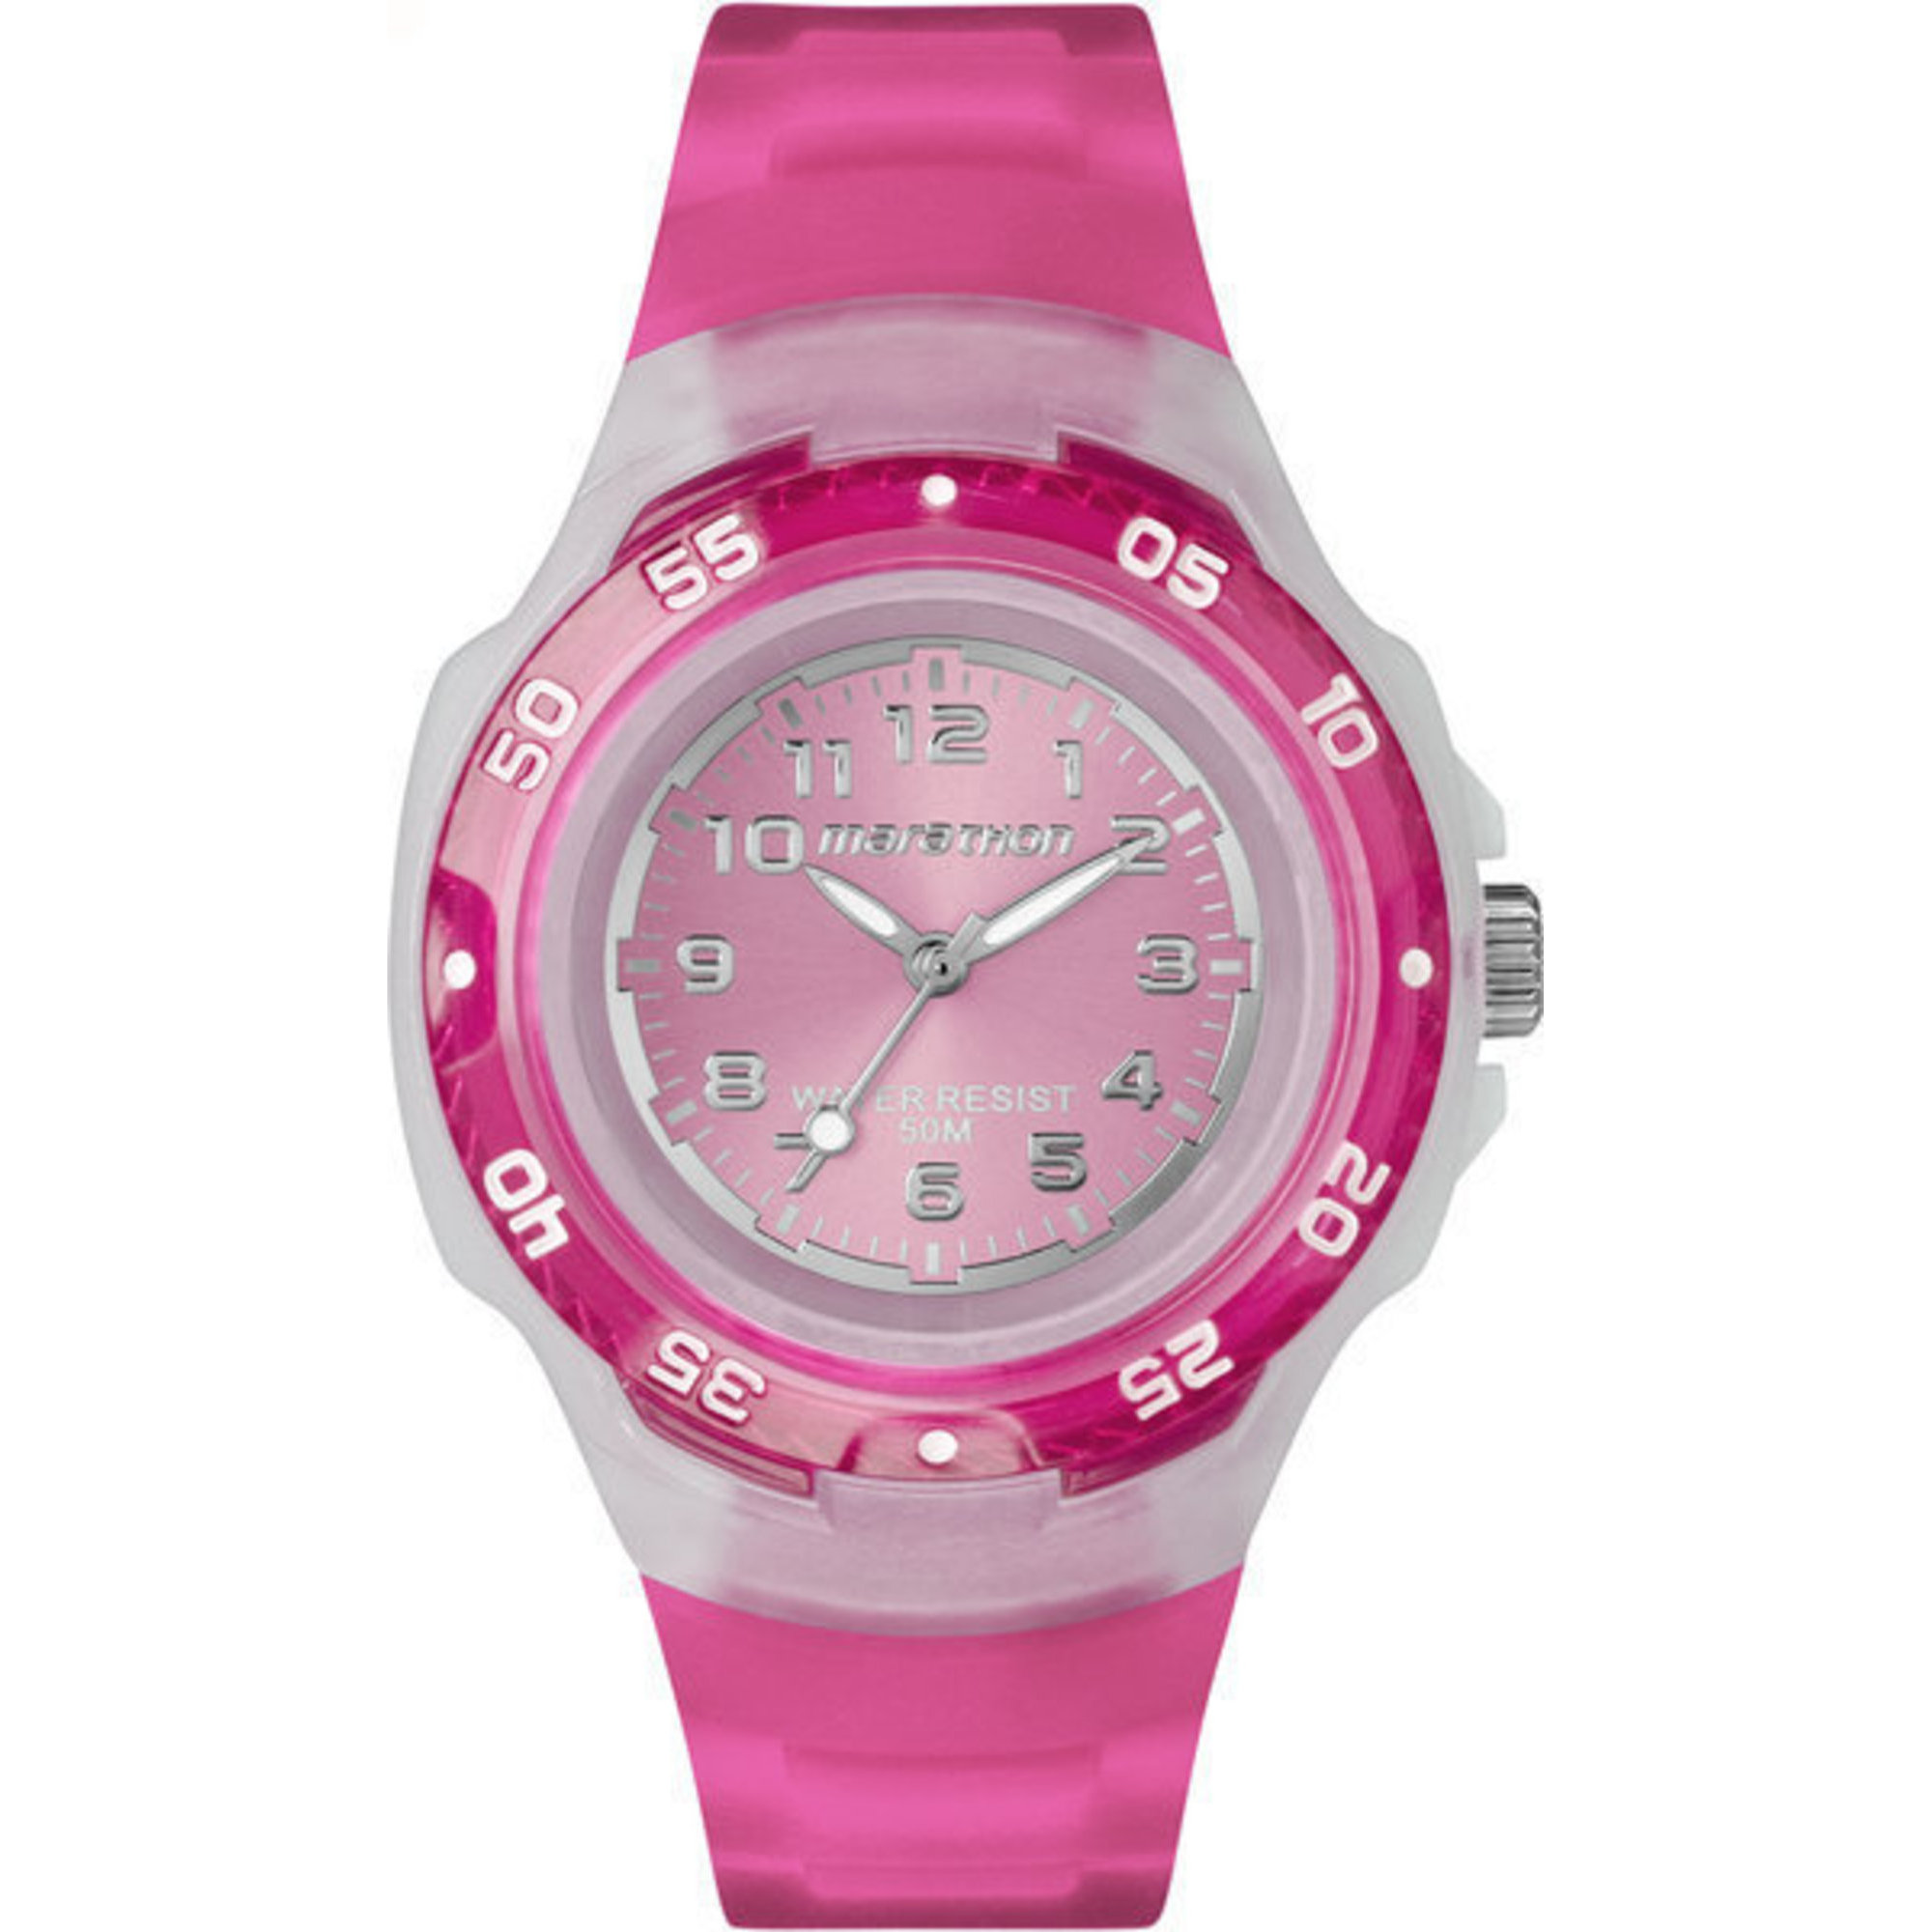 products steel pink us main sku multifunction watch pdpzoom watches fossil en aemresponsive tailor womens stainless